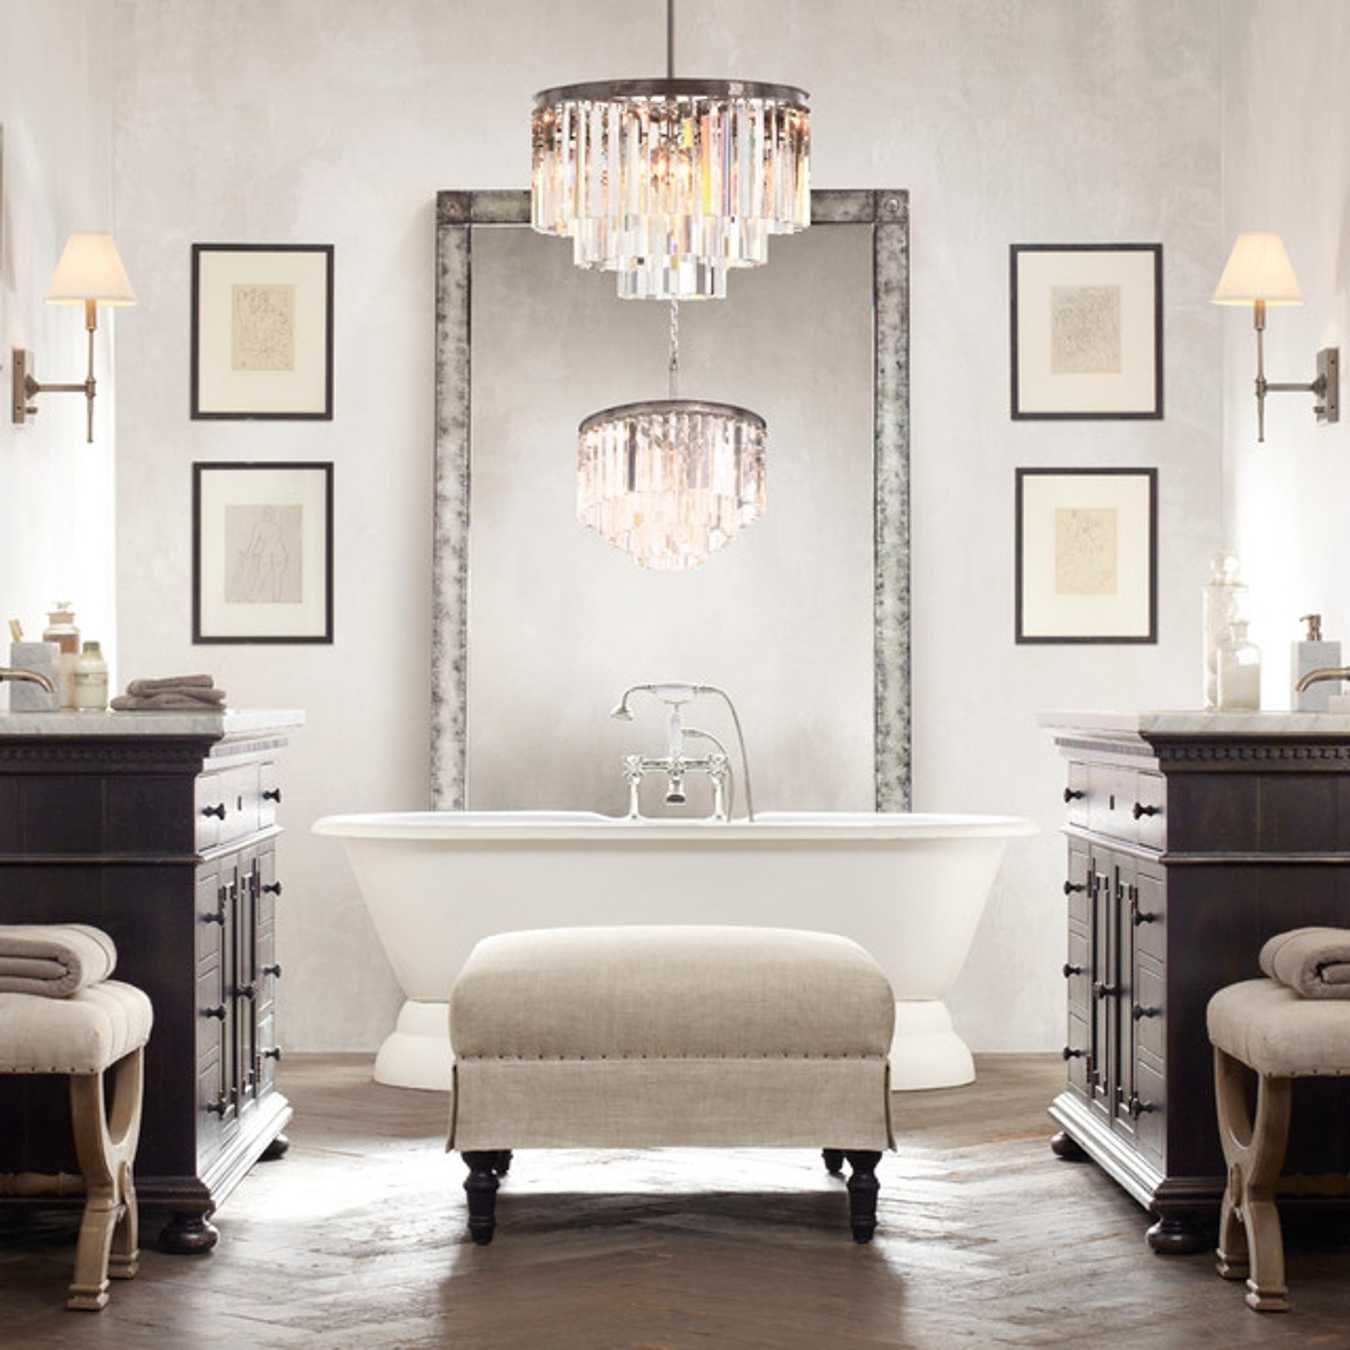 Widely Used Bathroom Chandeliers With Regard To Pendant Lights (View 7 of 15)